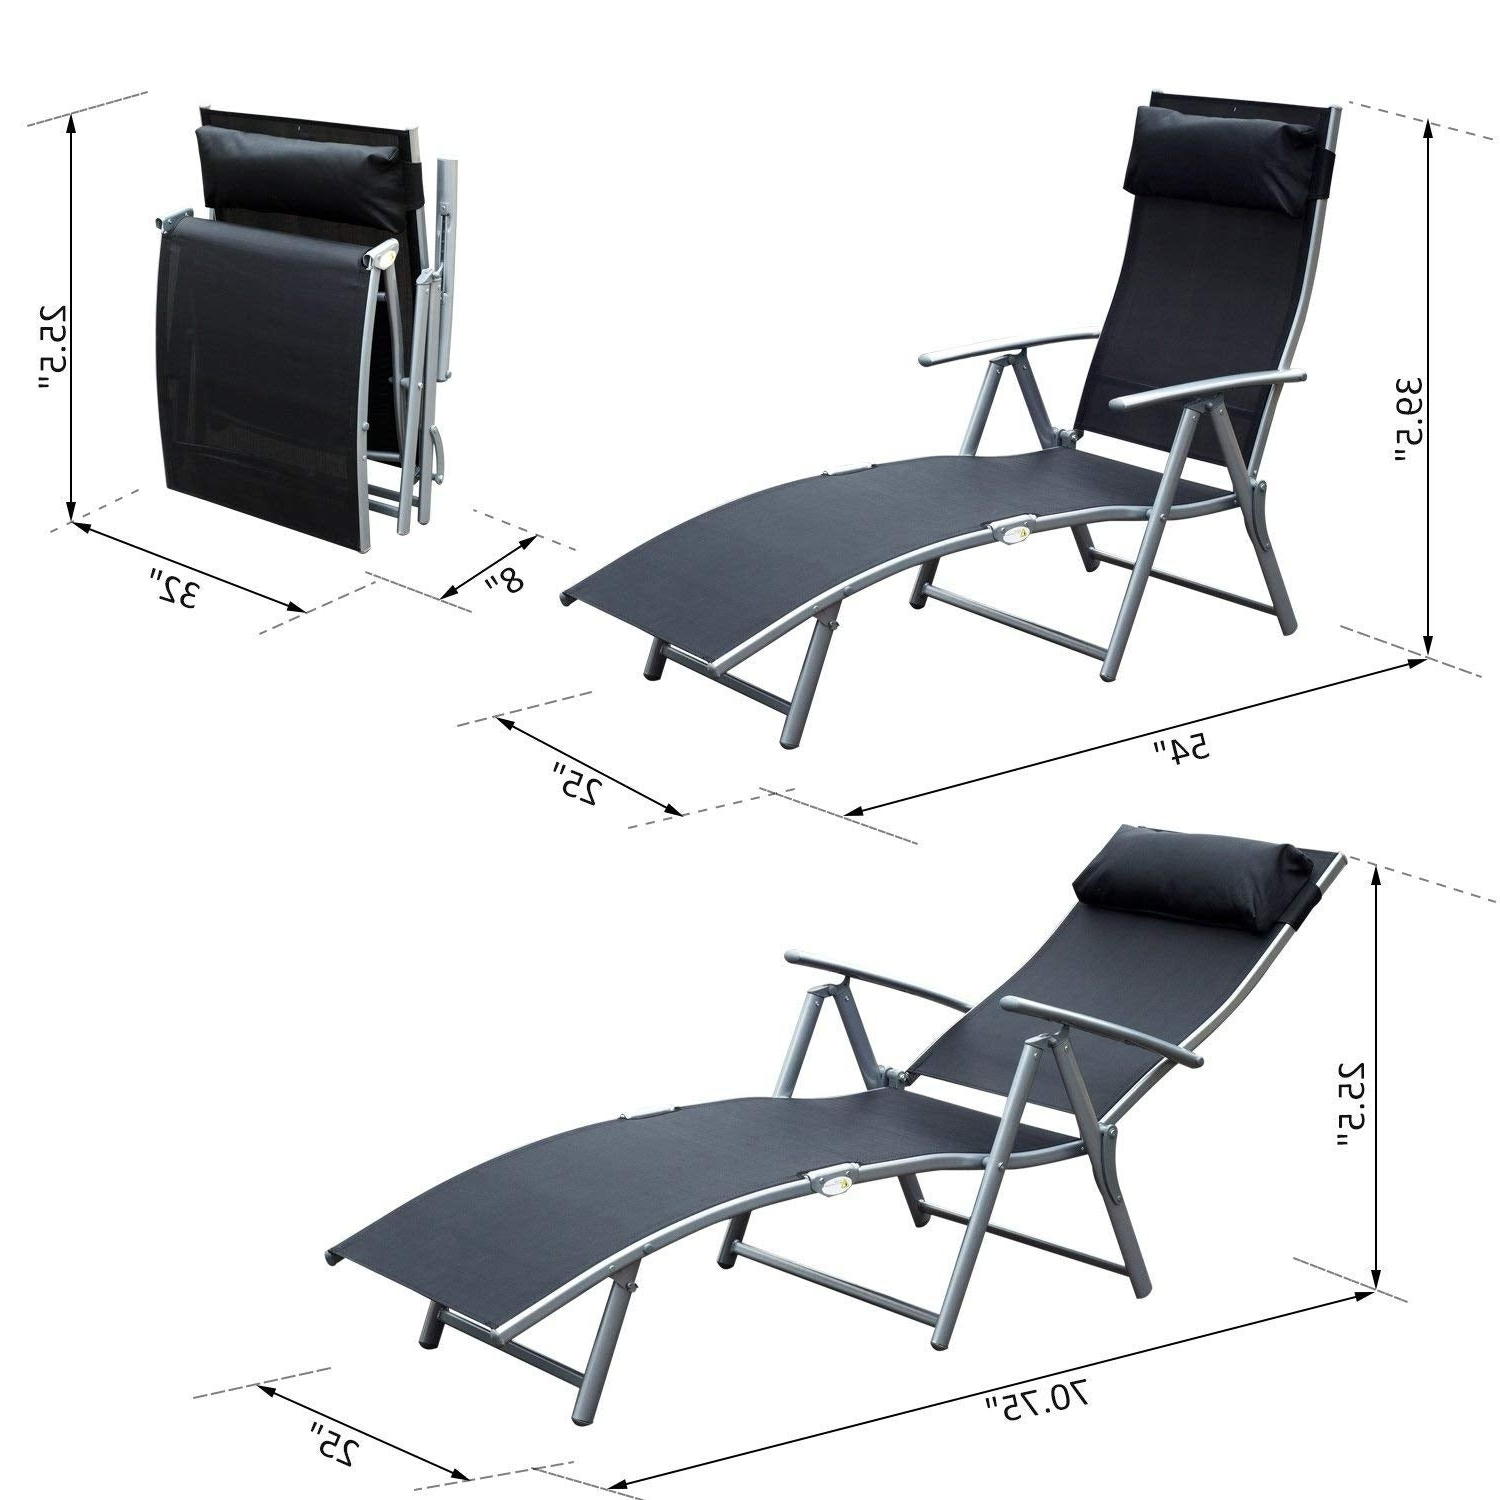 Outsunny Steel Sling Fabric Outdoor Folding Chaise Lounge Chair Recliner – Black For Well Known Steel Sling Fabric Outdoor Folding Chaise Lounges (View 9 of 25)